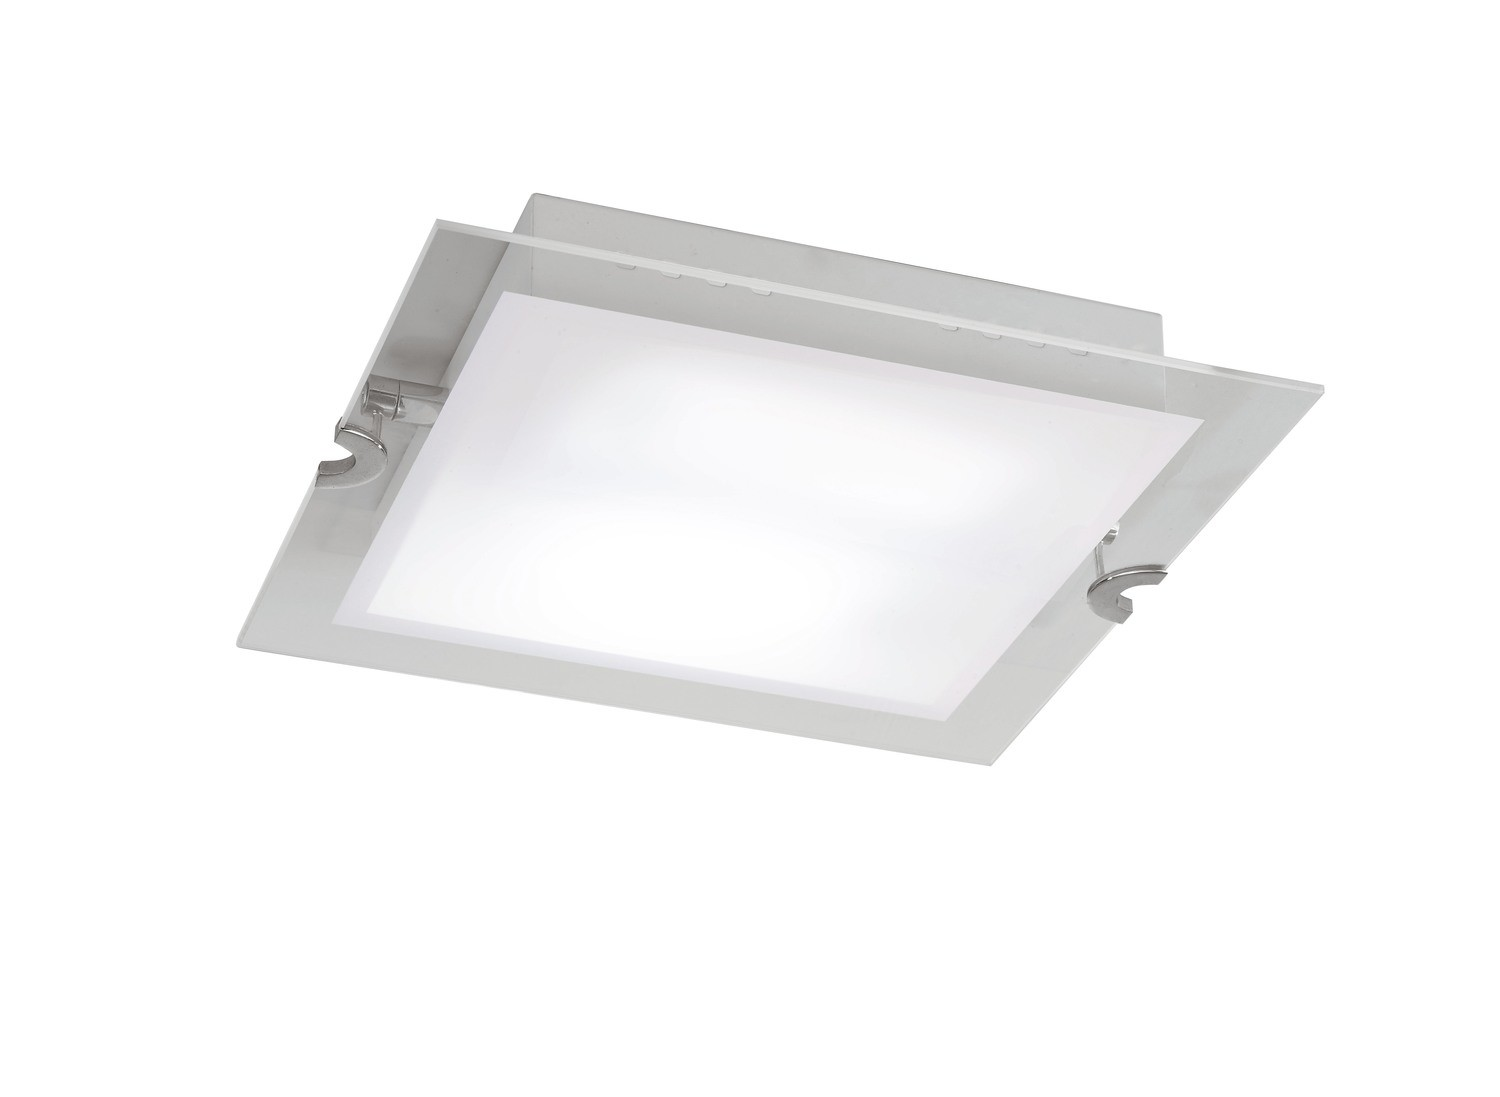 Melbourne Ceiling 15W LED 3000K, 1350lm, Polished Chrome/Frosted White Glass, 3yrs Warranty